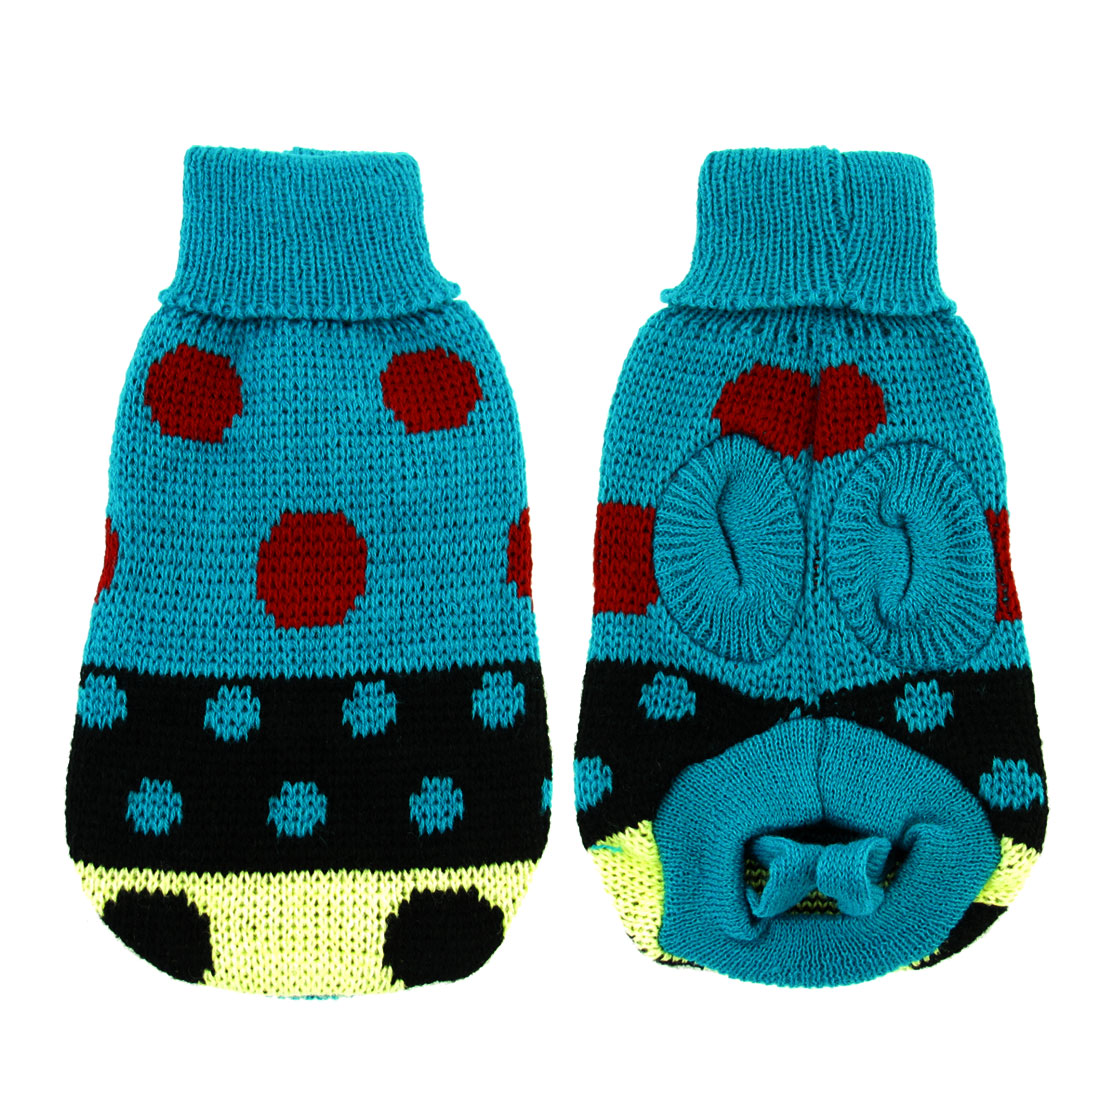 Pet Dog Cat Winter Warm Turtleneck Knitted Coat Apparel Sweater Clothes Teal Size 6